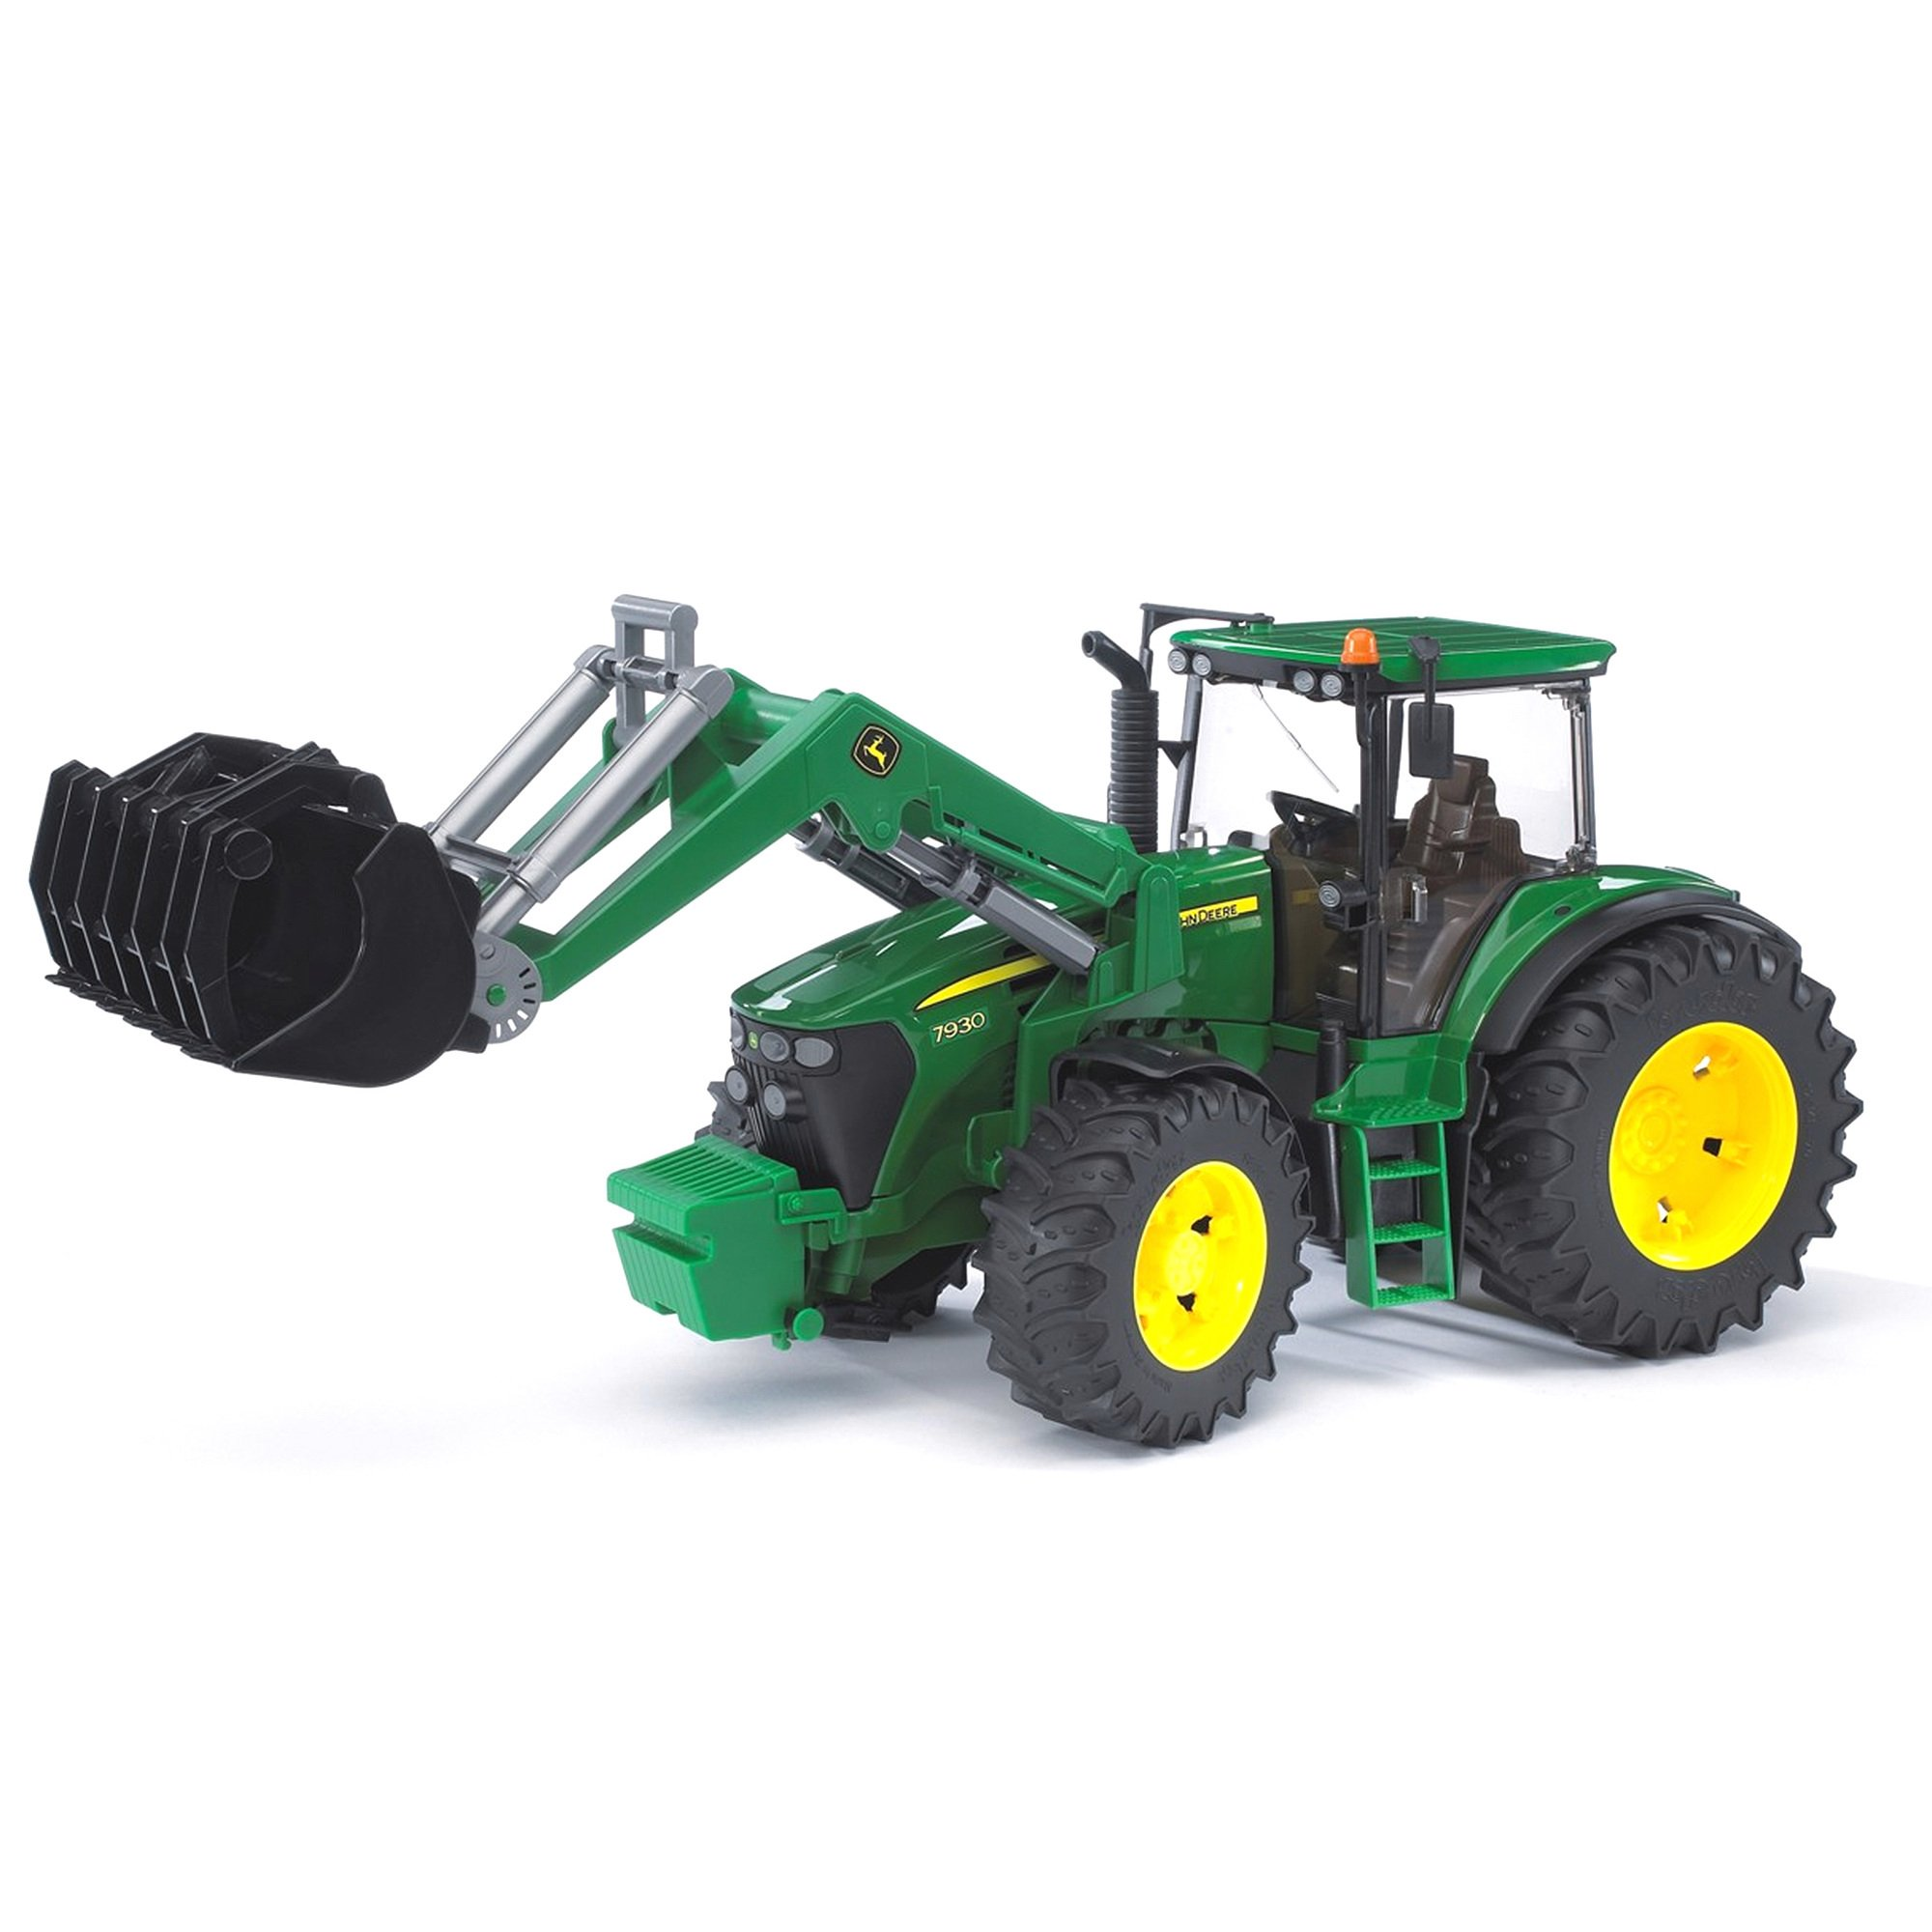 Bruder Toys Agriculture John Deere 7930 Plastic Tractor with Tipping Frontloader by Bruder Toys